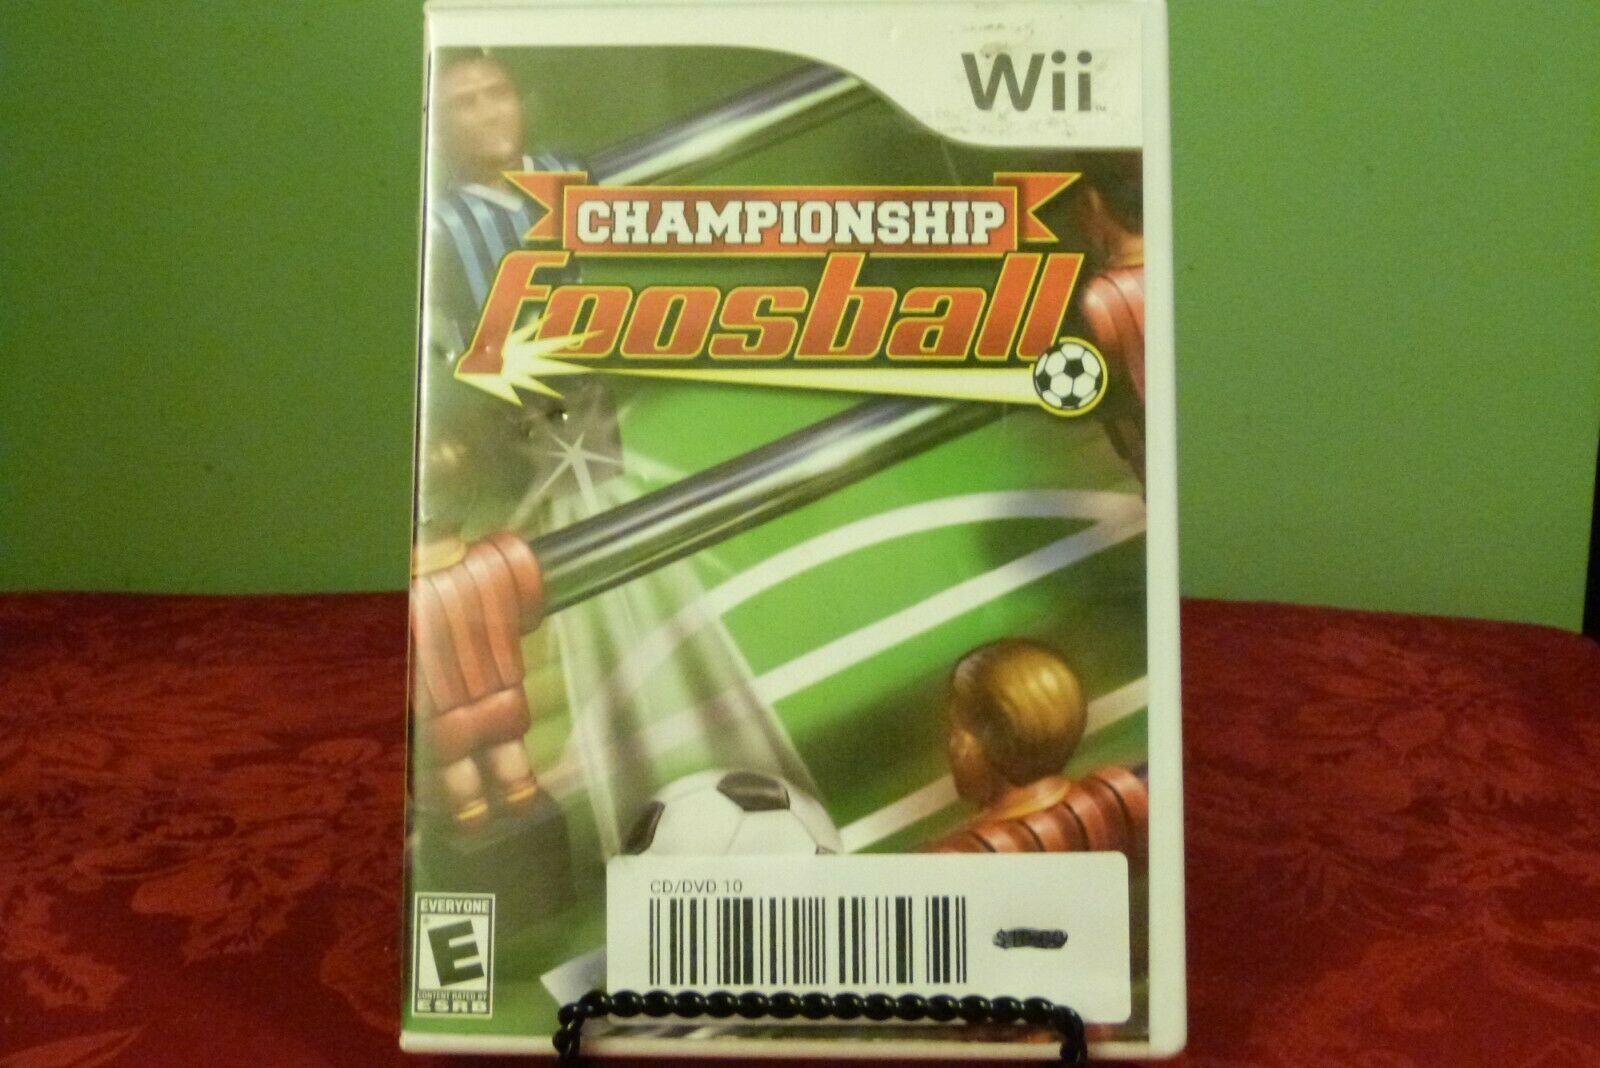 Primary image for Championship Foosball (Nintendo Wii, 2008) Good Condition